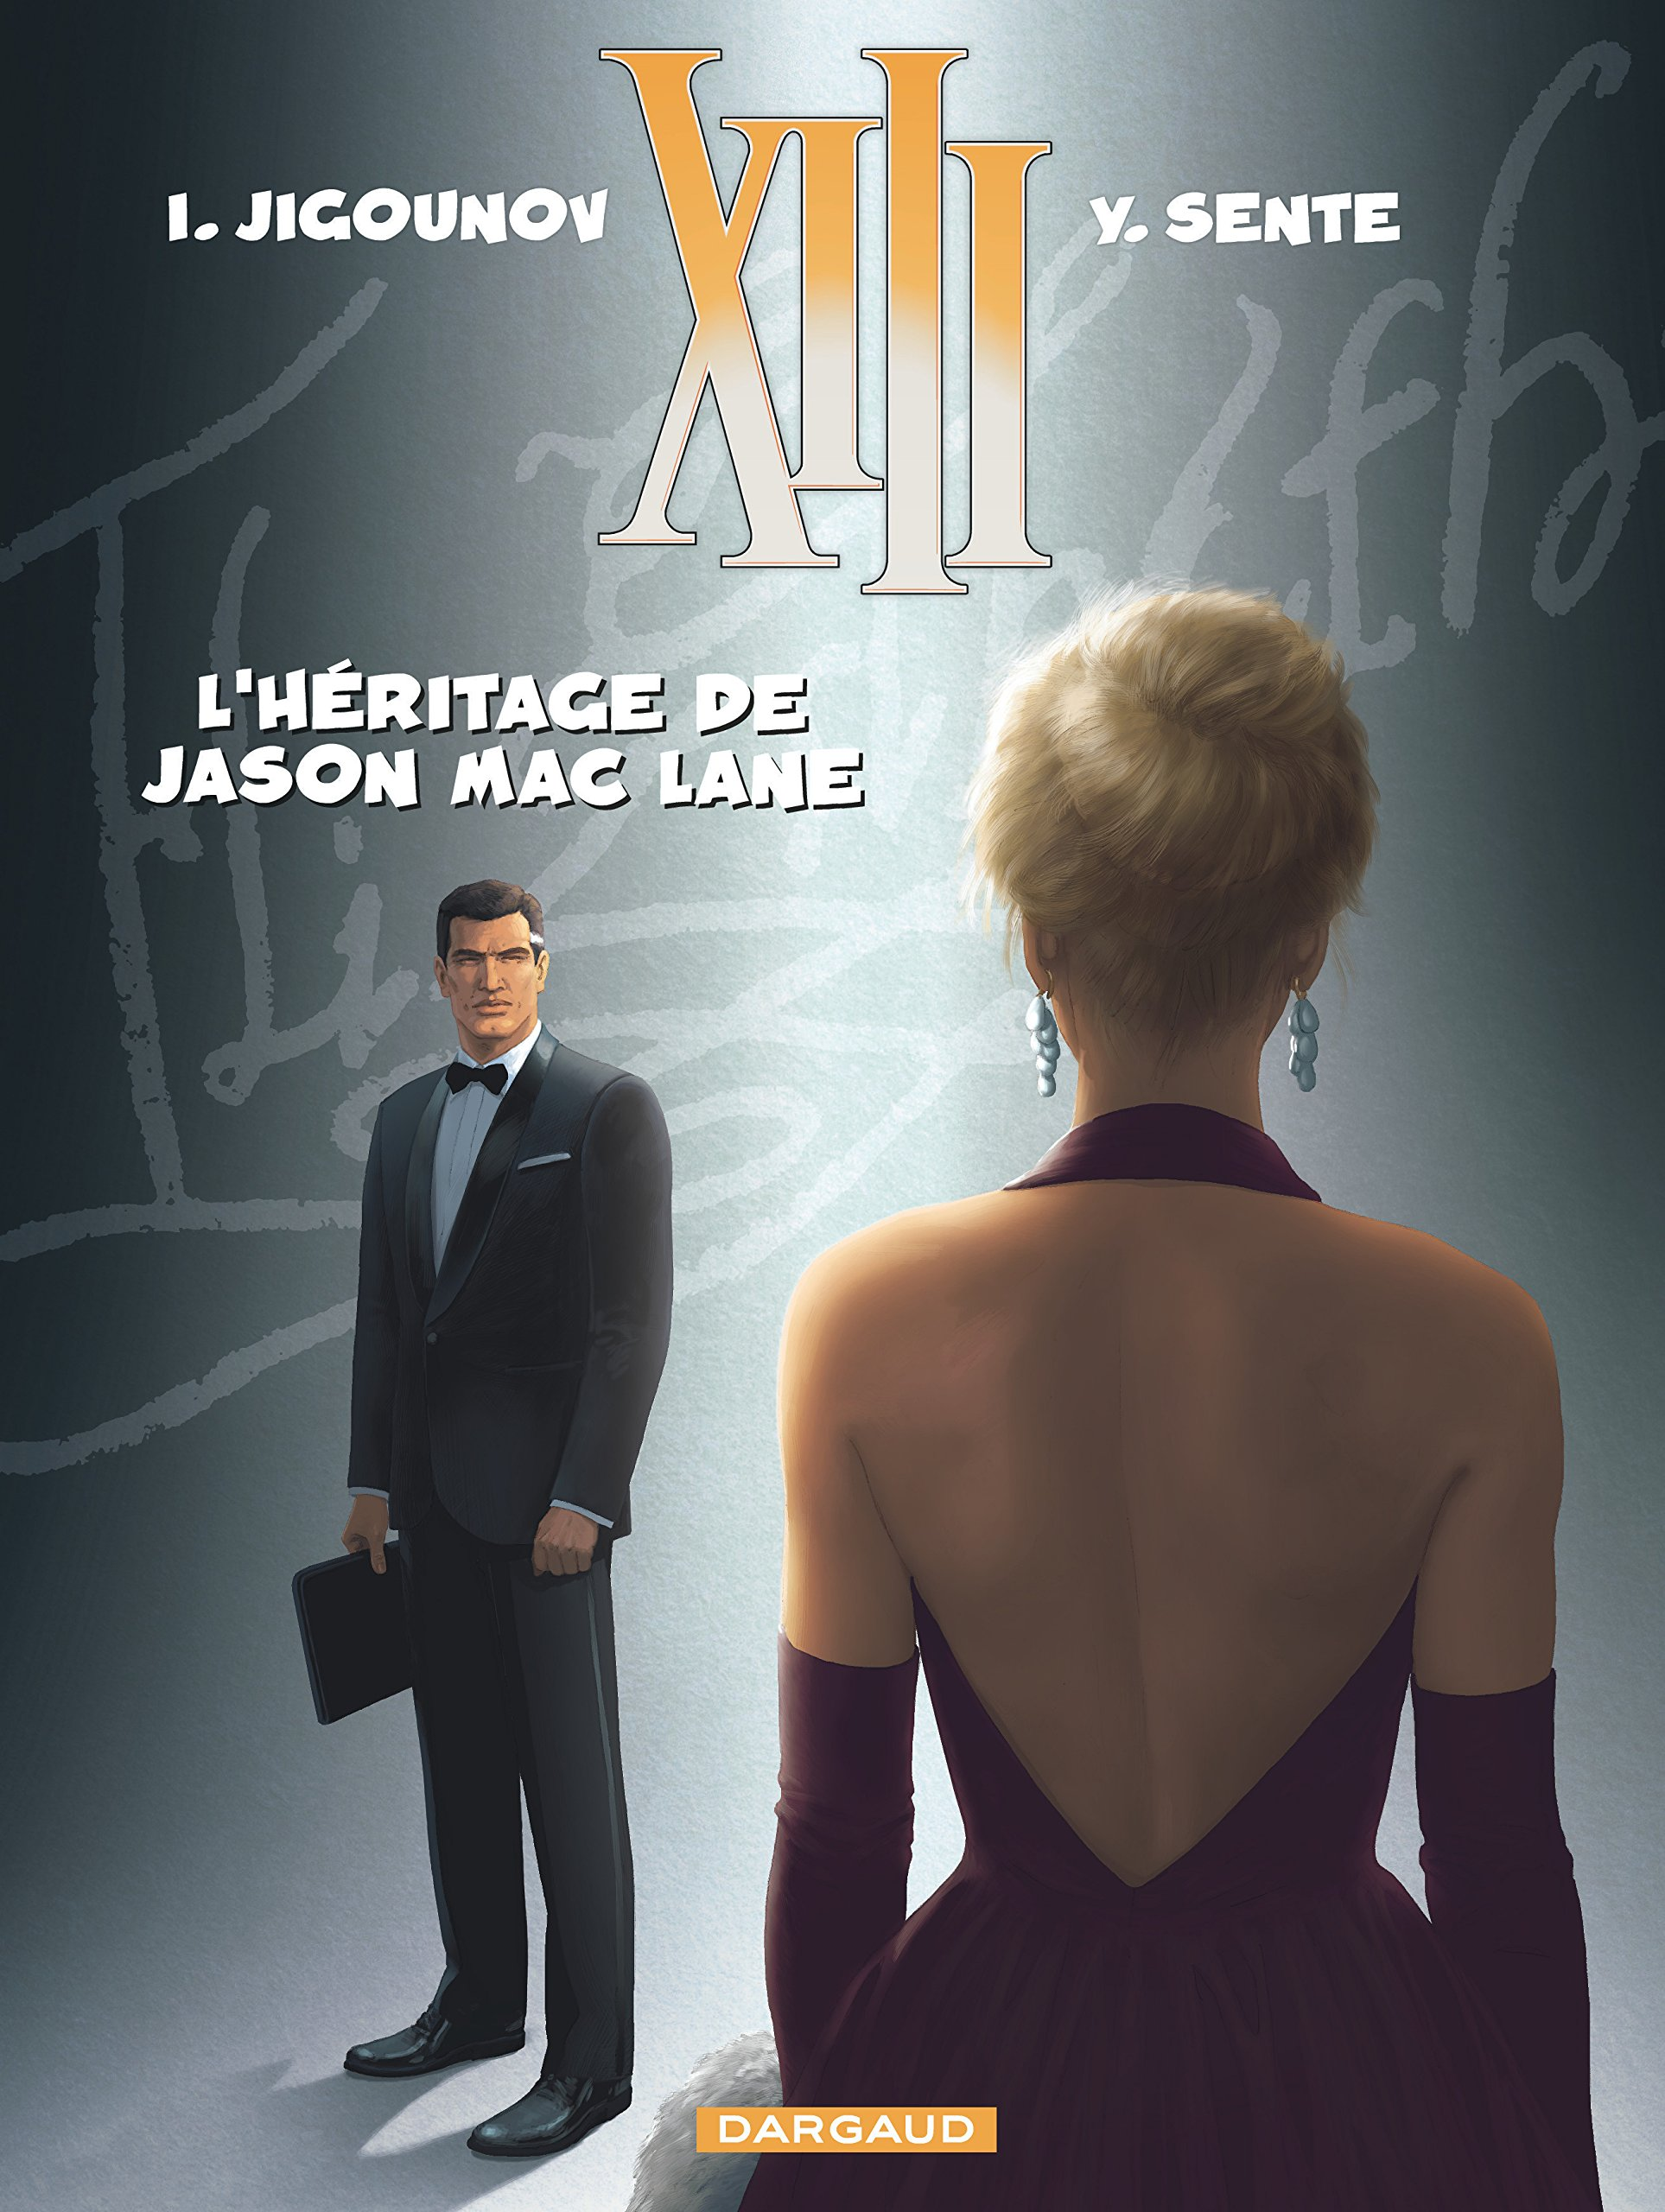 XIII 24 : l'héritage de Jason Mac Lane: Yves Sente: 9782505063513: Books -  Amazon.ca